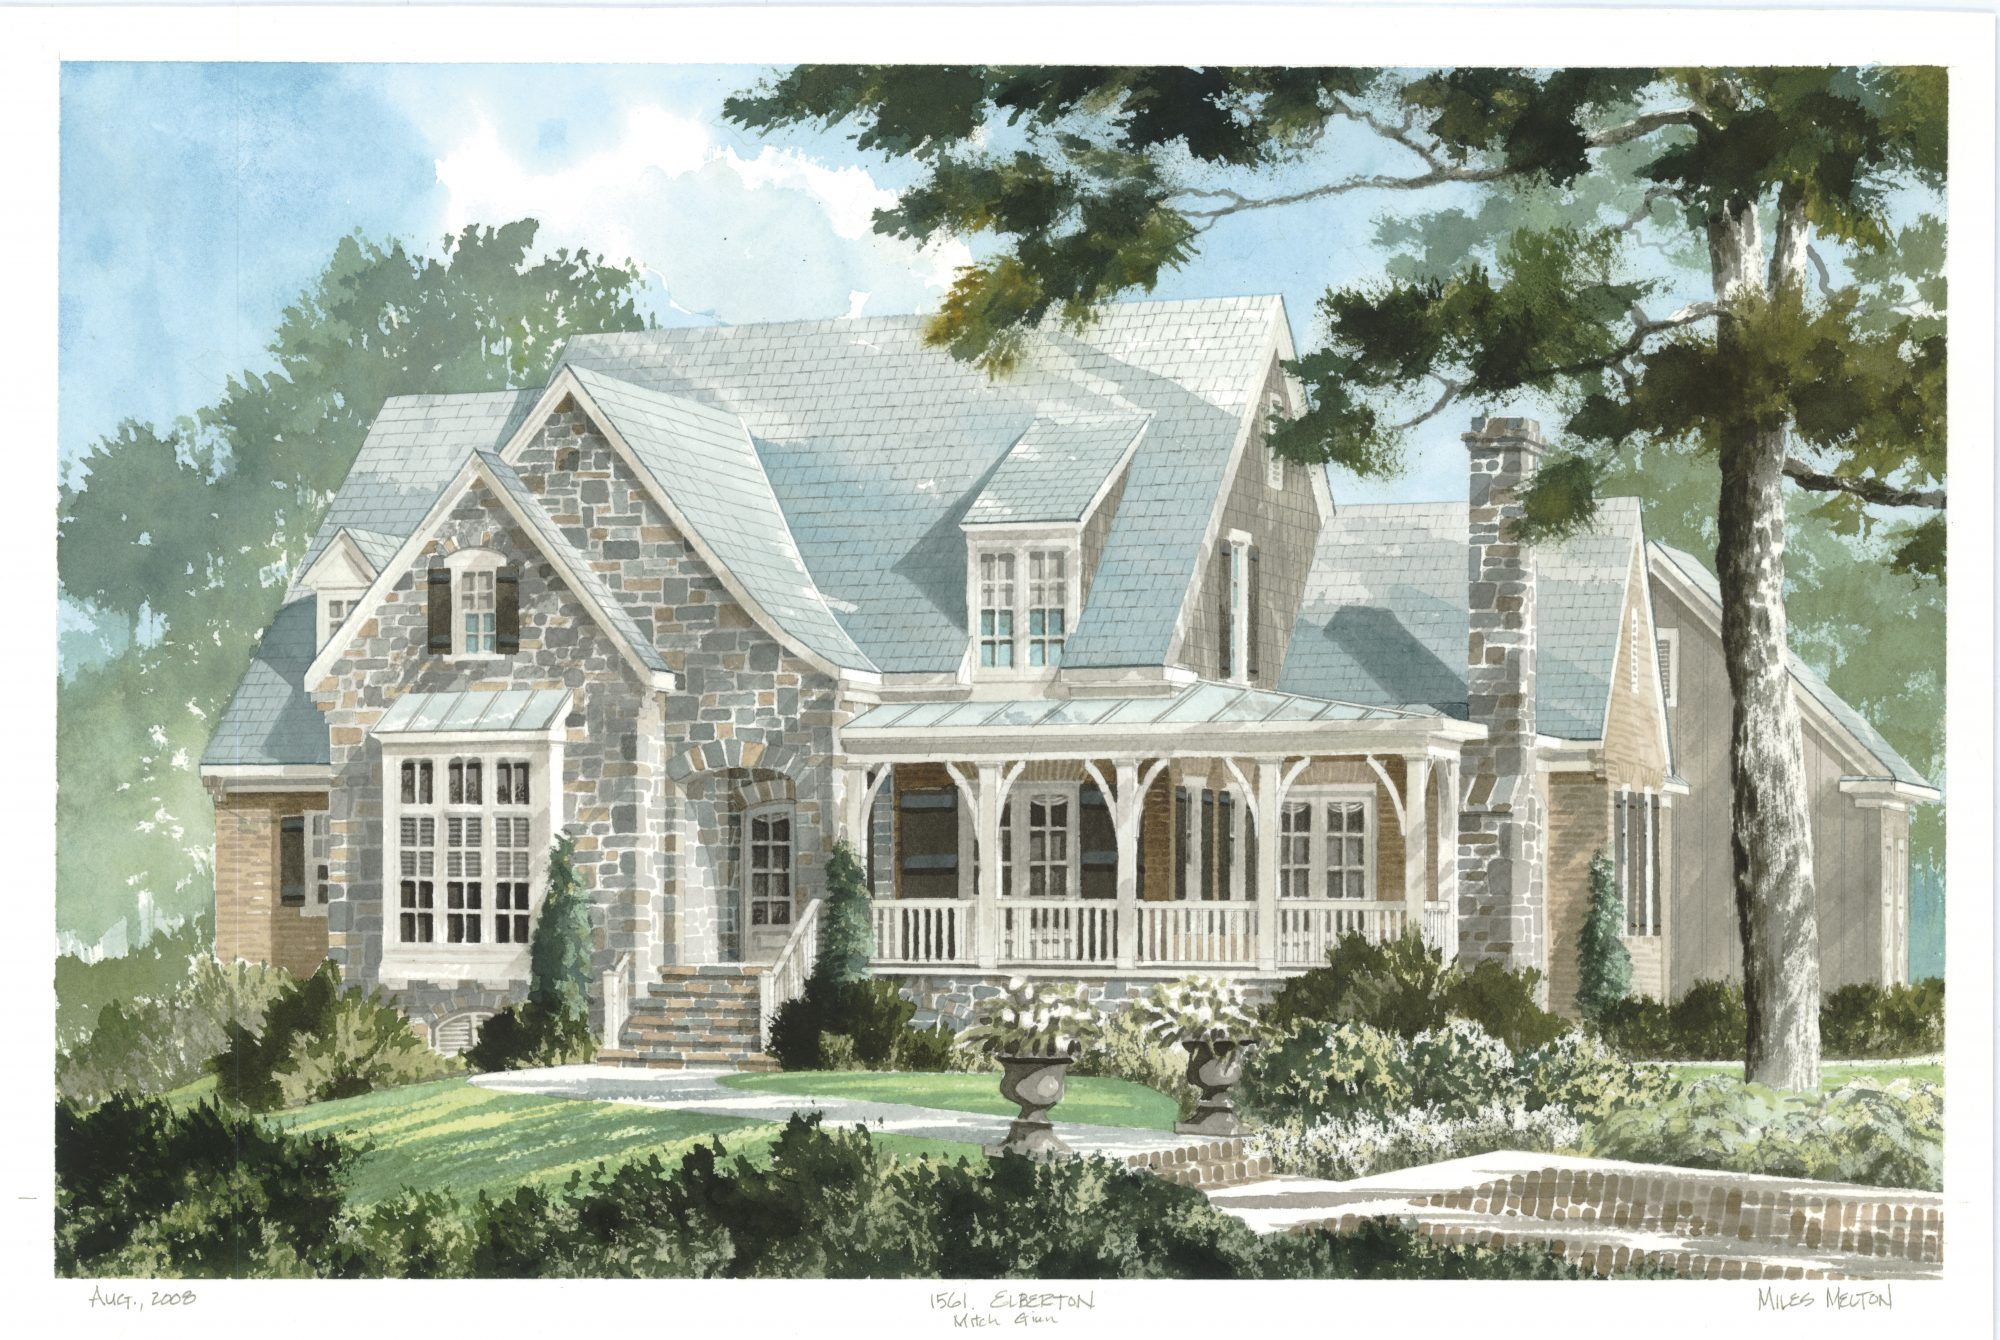 Top 12 Best Selling House Plans Craftsman House Plans Southern Living House Plans House Plans Farmhouse